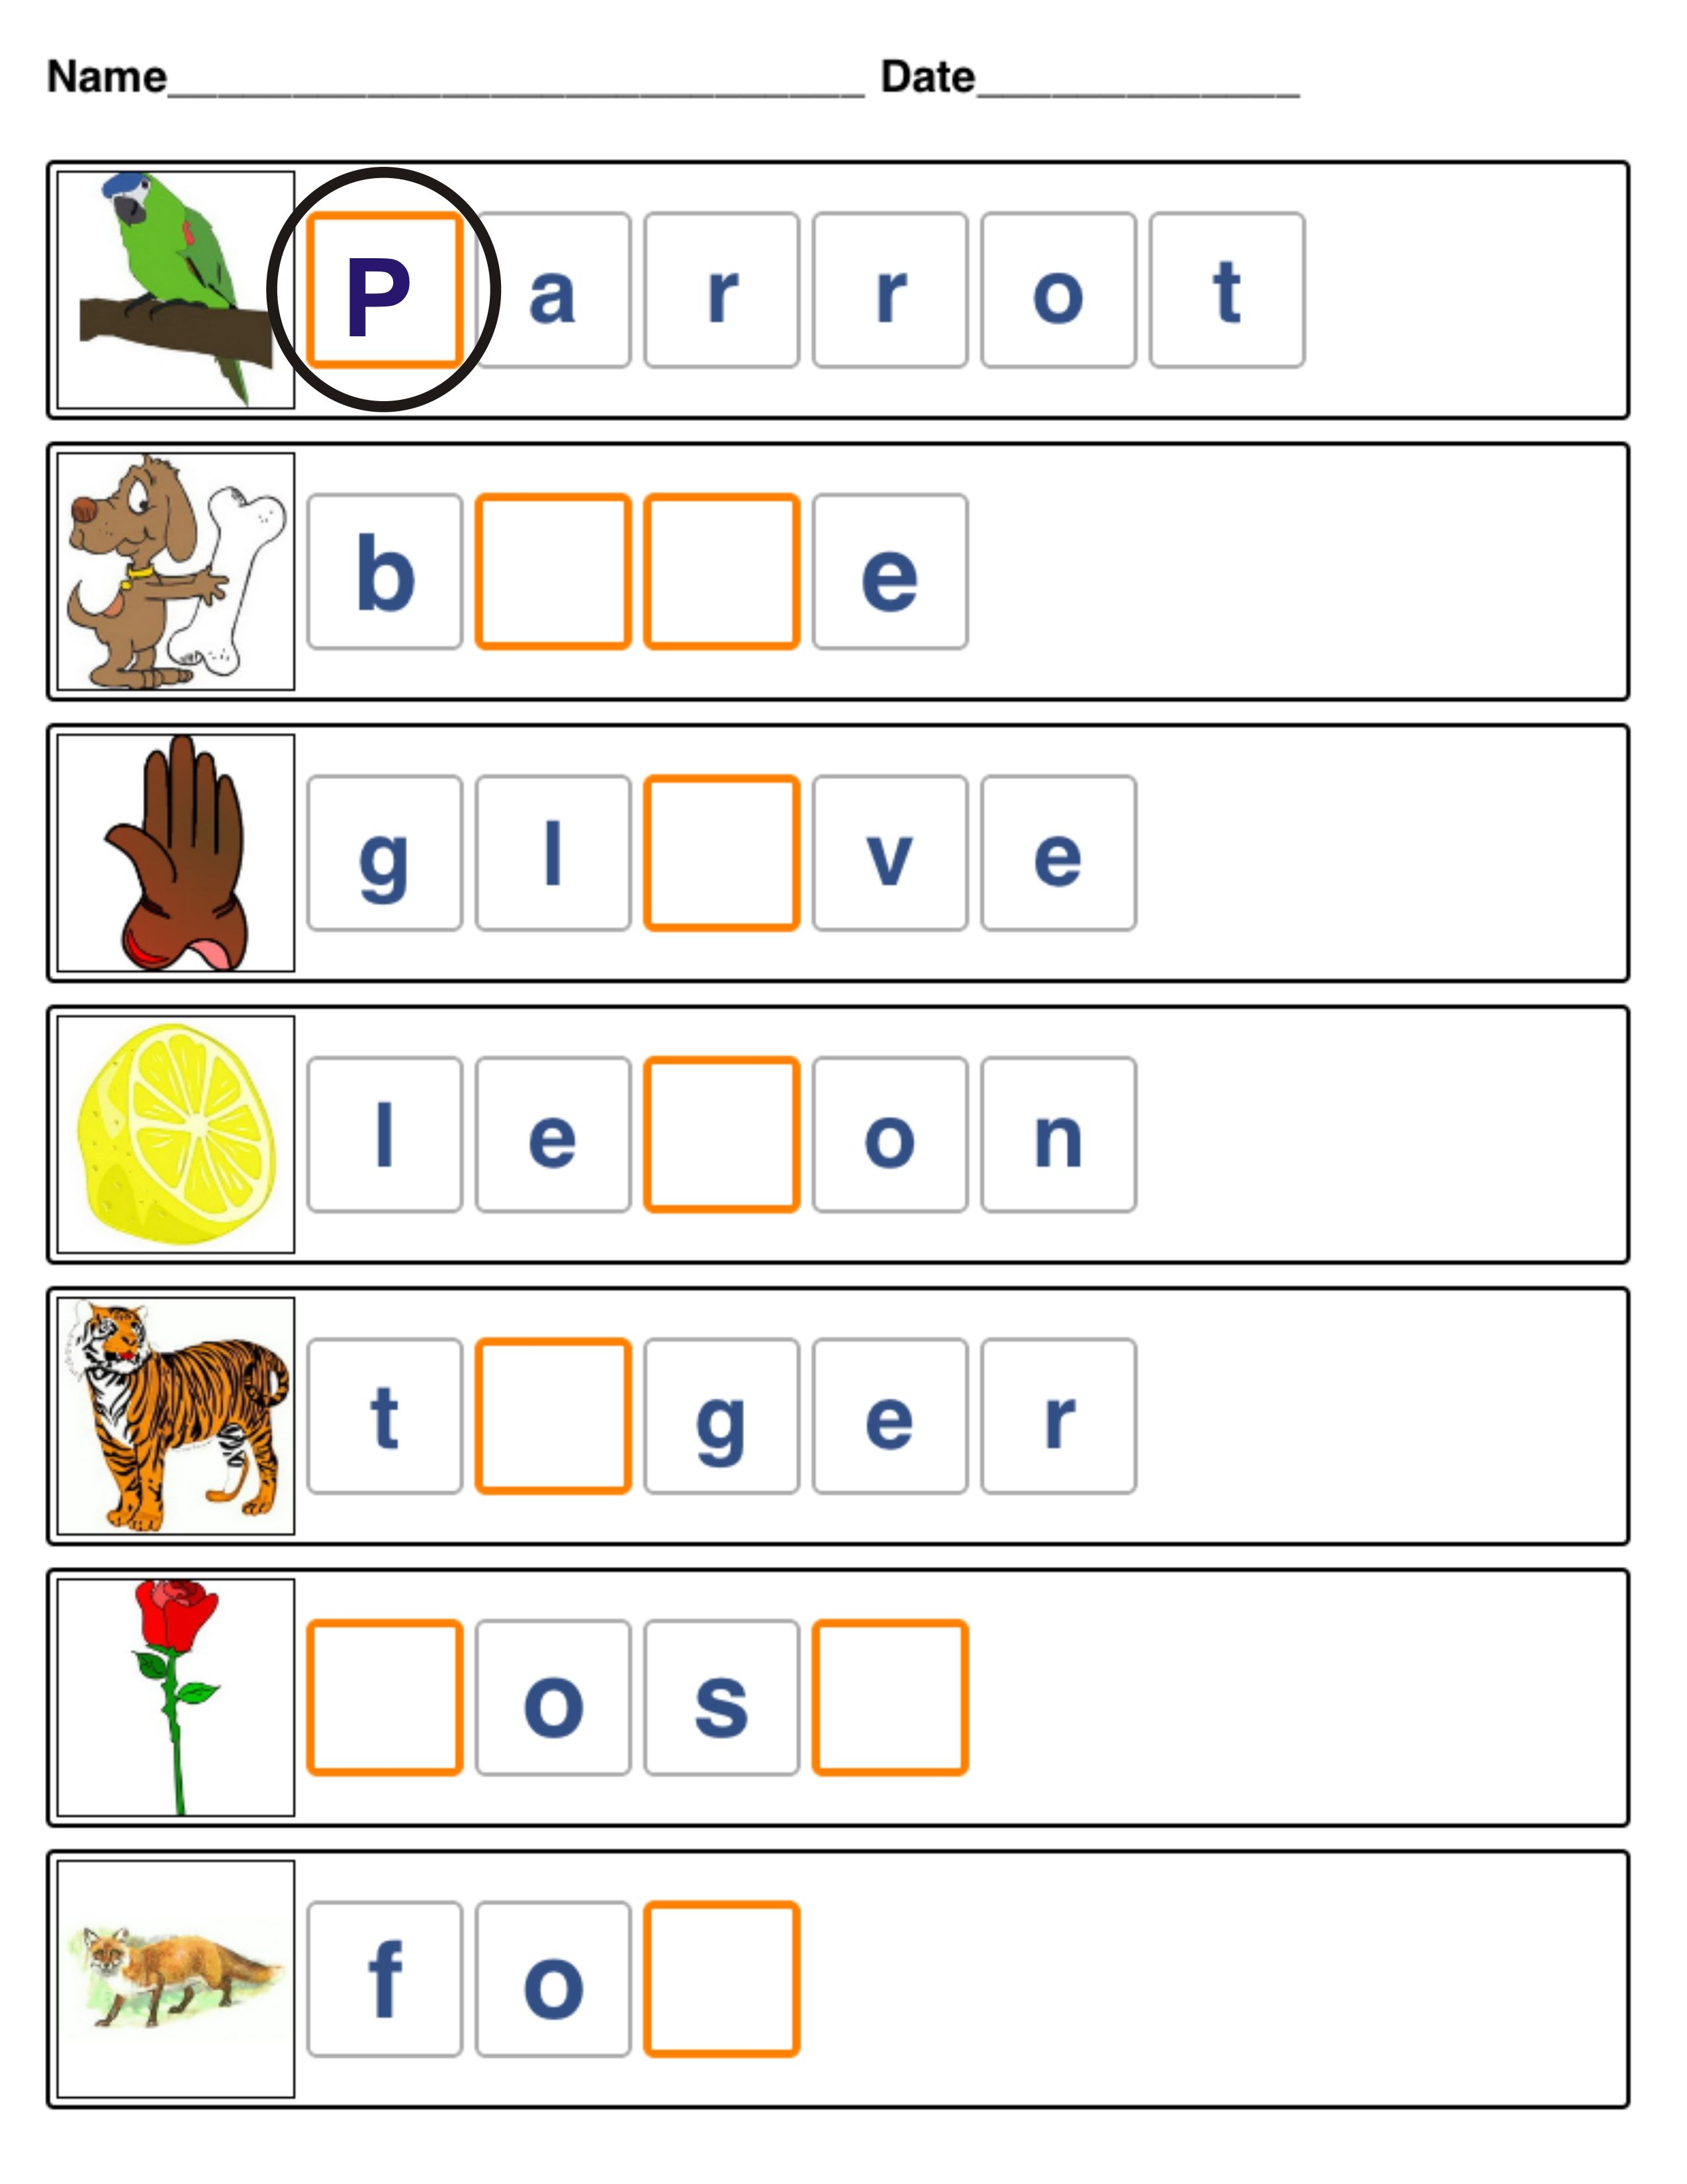 Word Search Games Are Fun Ways To Expand Your Child S